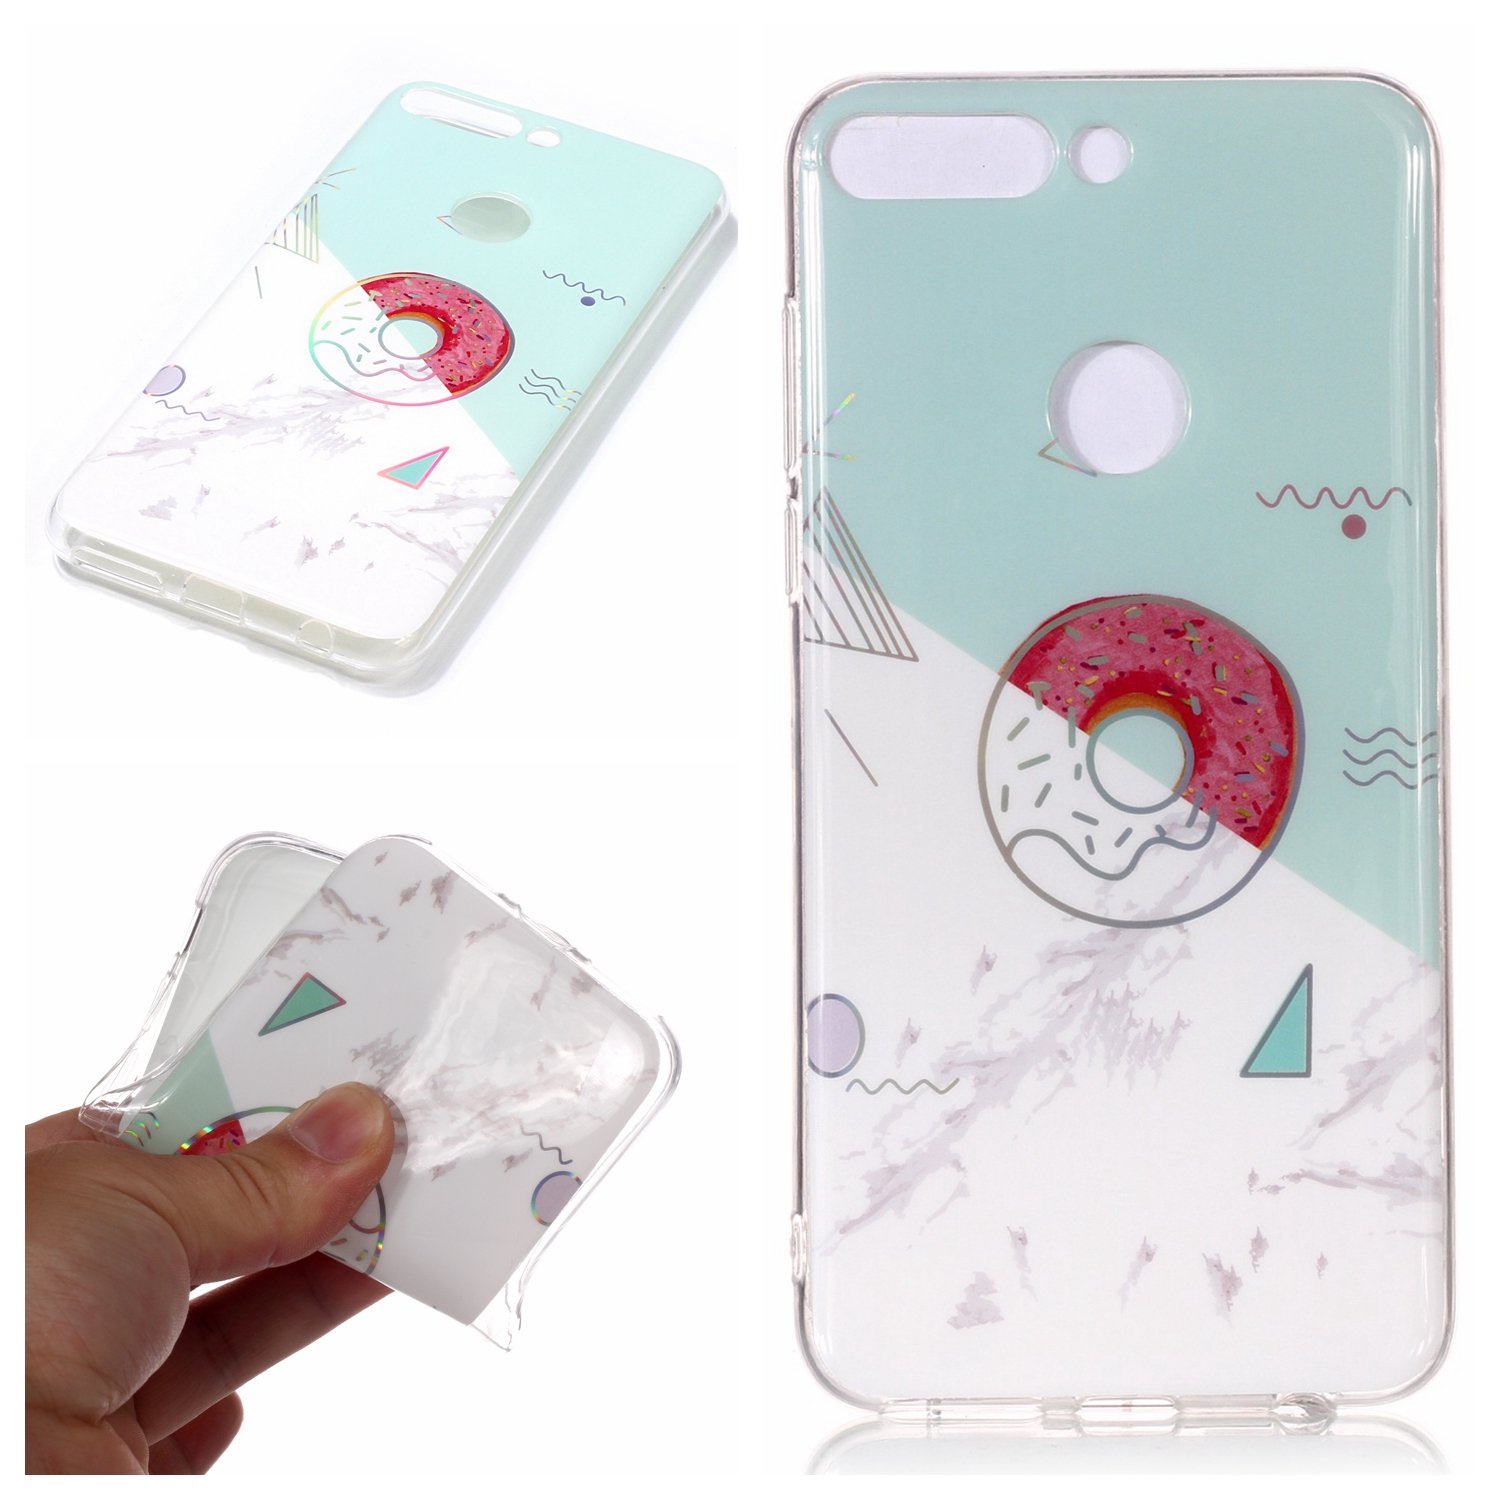 Artfeel Huawei P Smart Coque, Luxe Marbre Motif Housse Souple Flexible Silicone TPU Pare-Chocs Arriè re É tui, Ultra Mince Lé ger Anti-Rayures Antichoc Couverture, Bleu Clair Ultra Mince Léger Anti-Rayures Antichoc Couverture